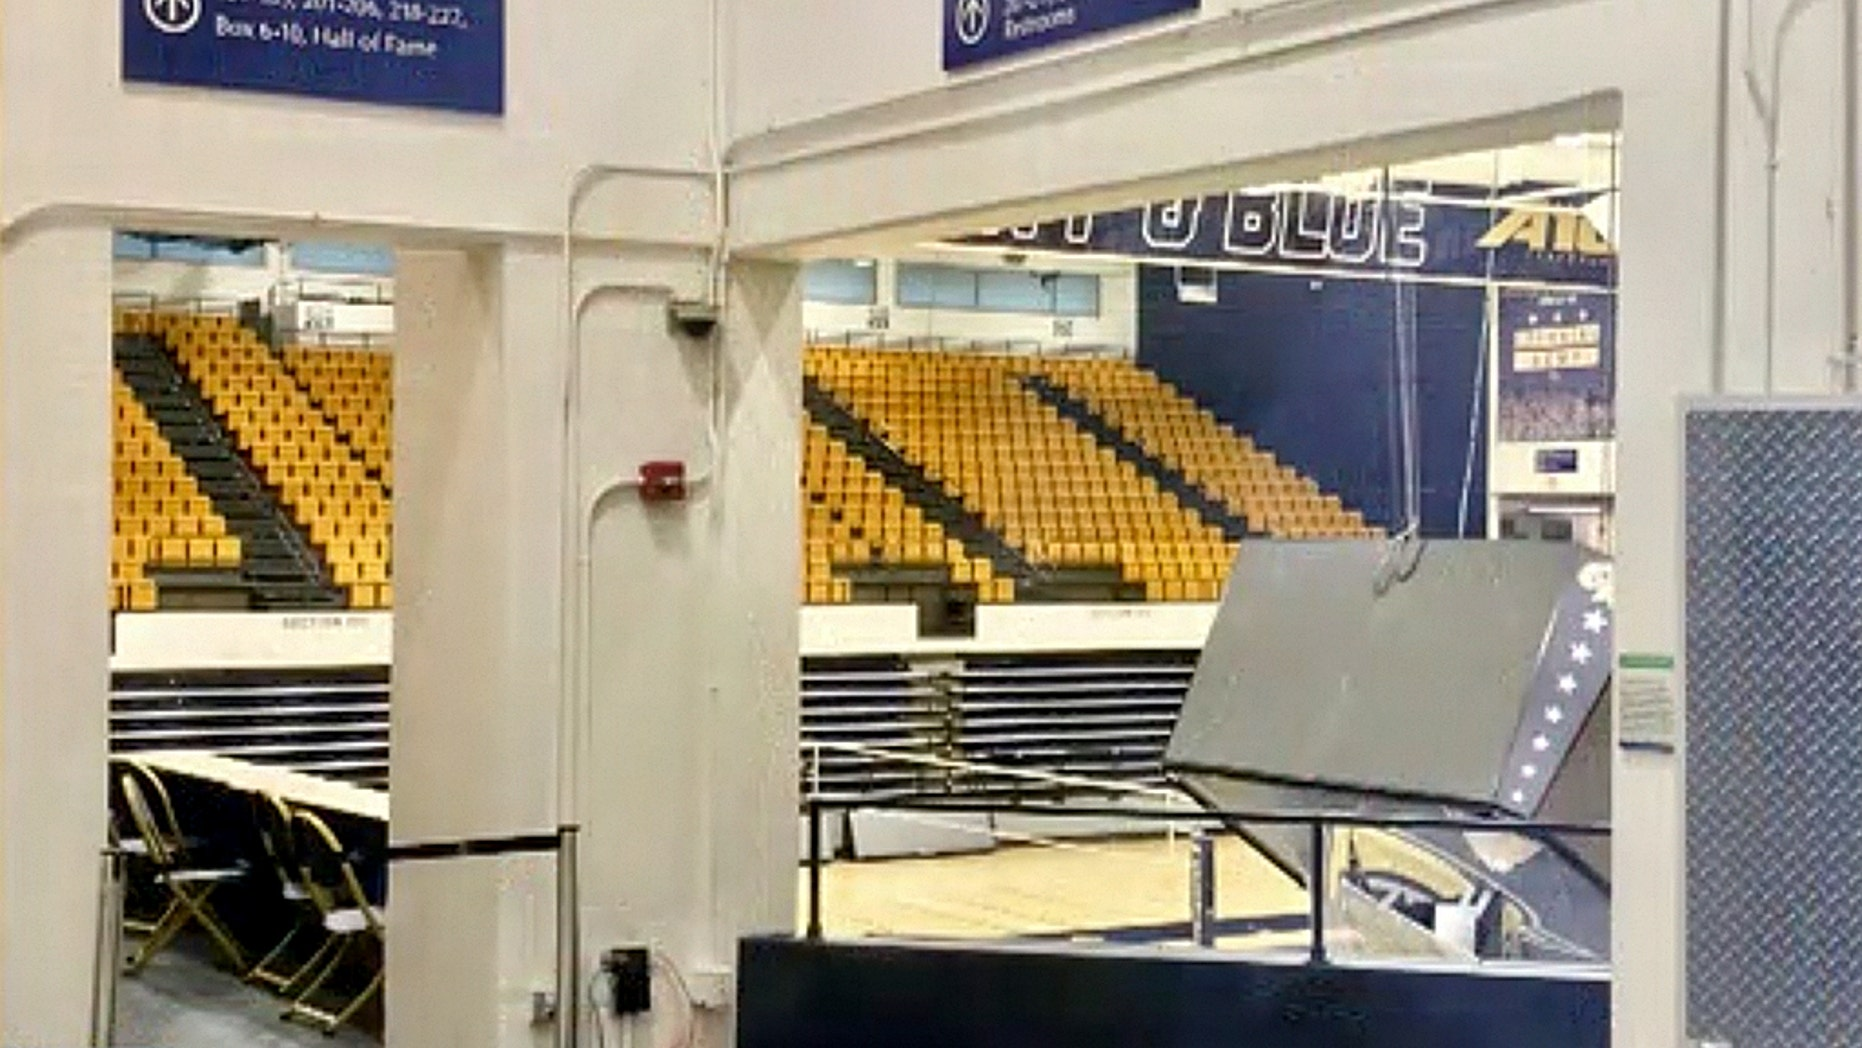 The scoreboard hanging above a George Washington University arena came crashing down on Tuesday.